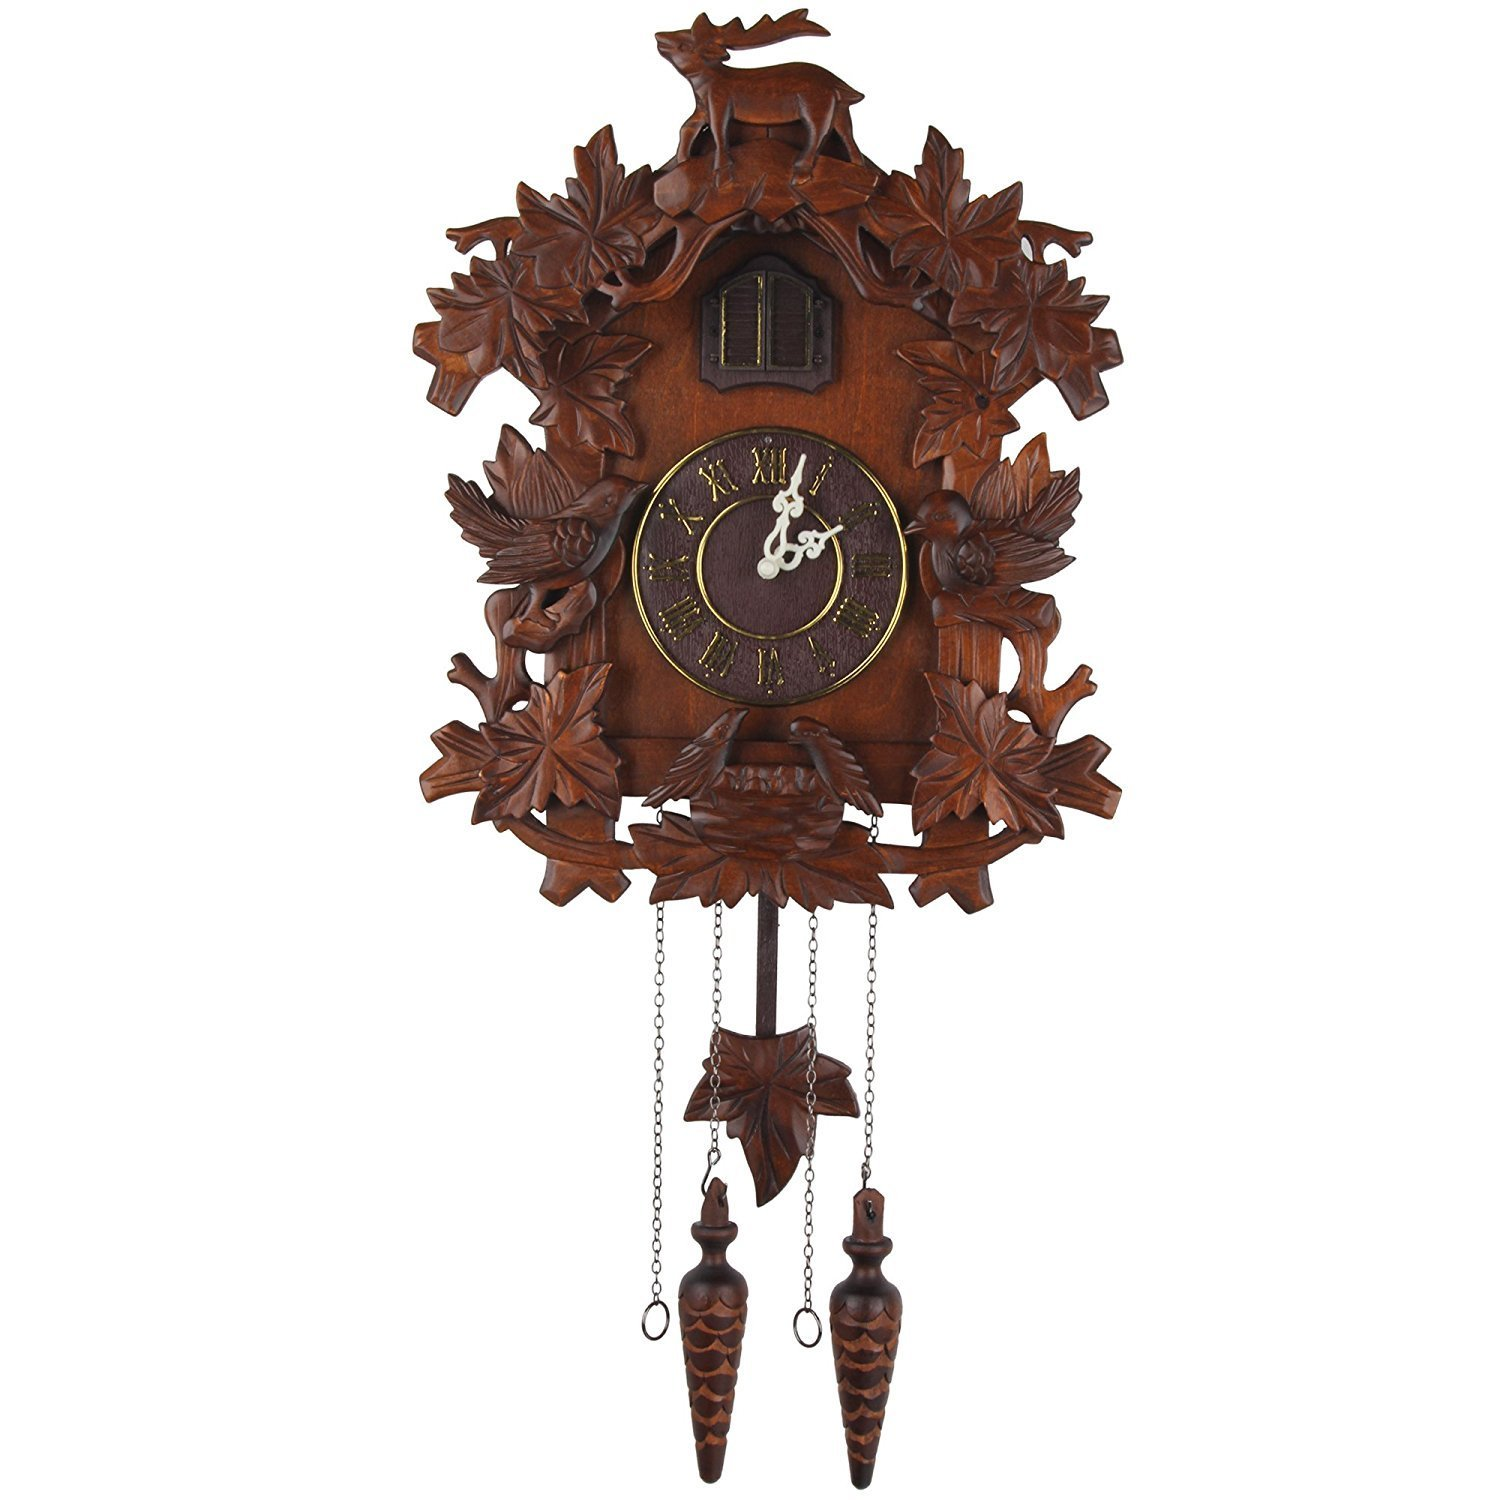 Kendal Handcrafted Wood Cuckoo Clock MX015-1 by